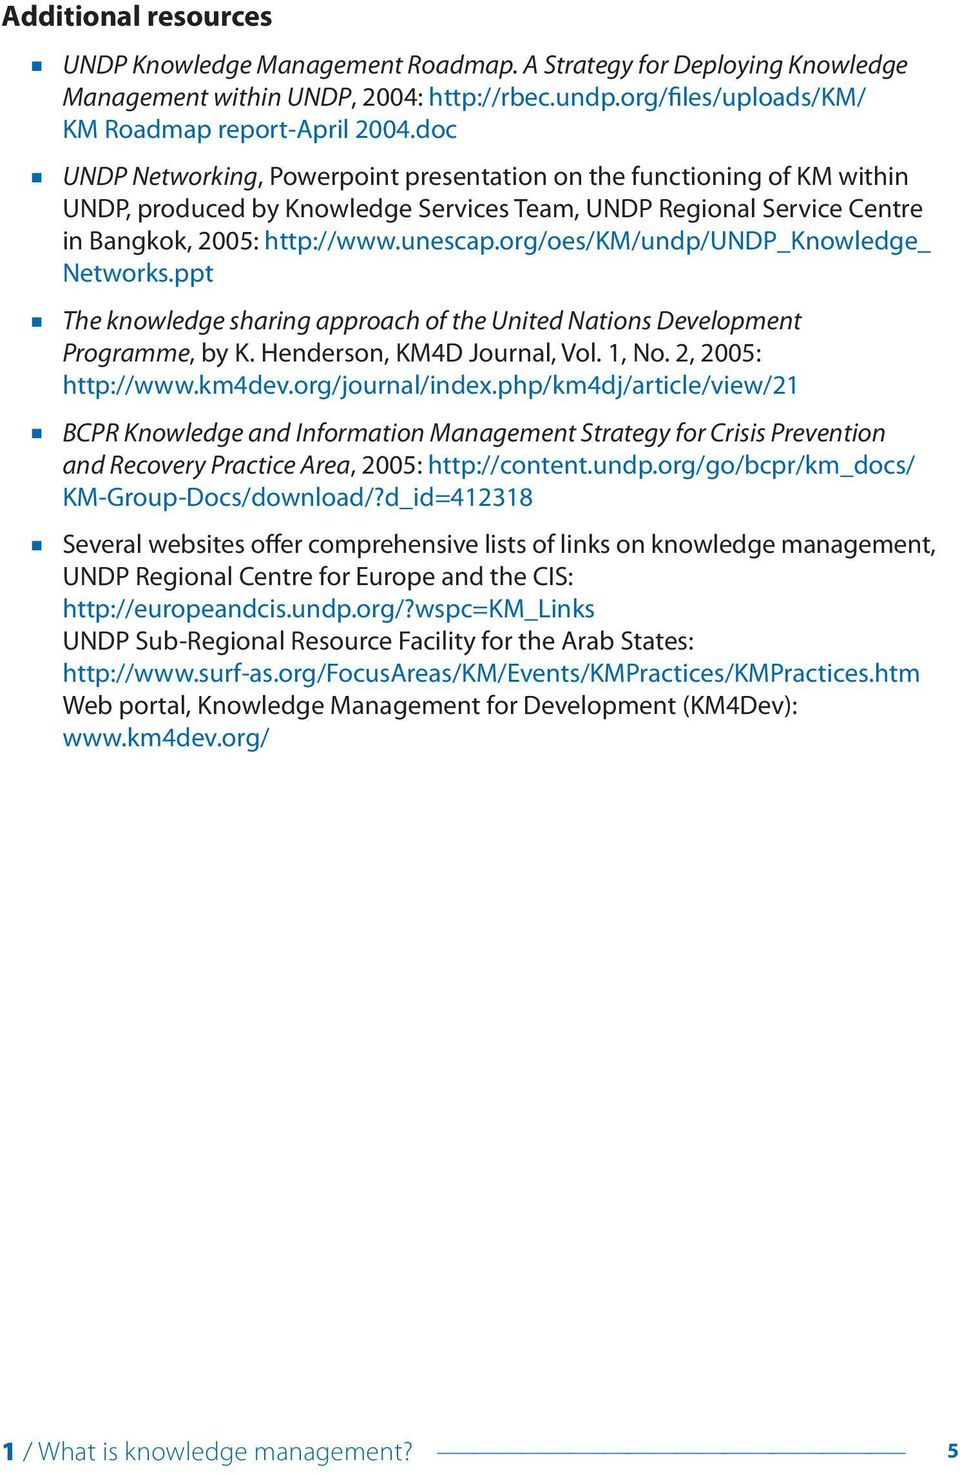 org/oes/km/undp/undp_knowledge_ Networks.ppt The knowledge sharing approach of the United Nations Development Programme, by K. Henderson, KM4D Journal, Vol. 1, No. 2, 2005: http://www.km4dev.